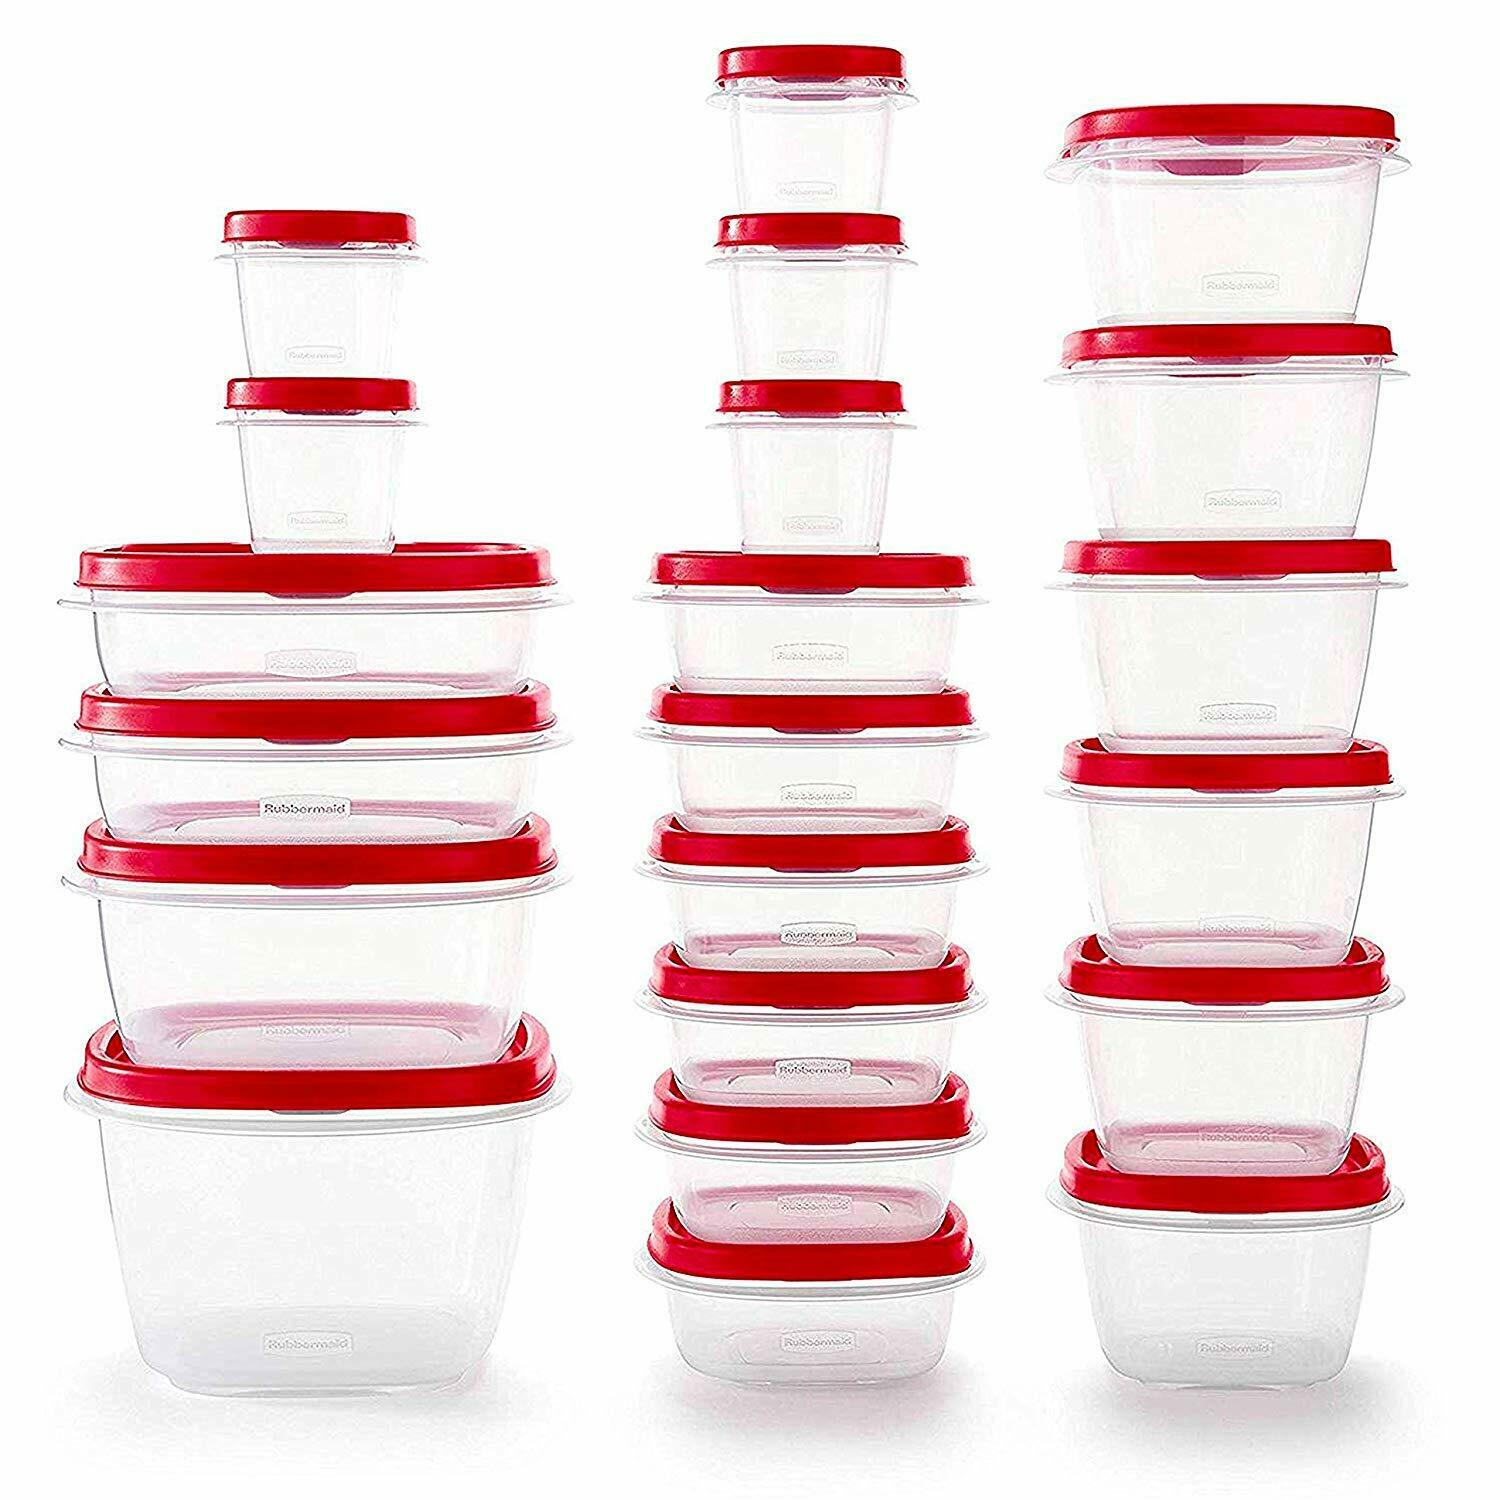 Rubbermaid 2063704 Easy Find Vented Lids Food Storage Container, Racer Red 1